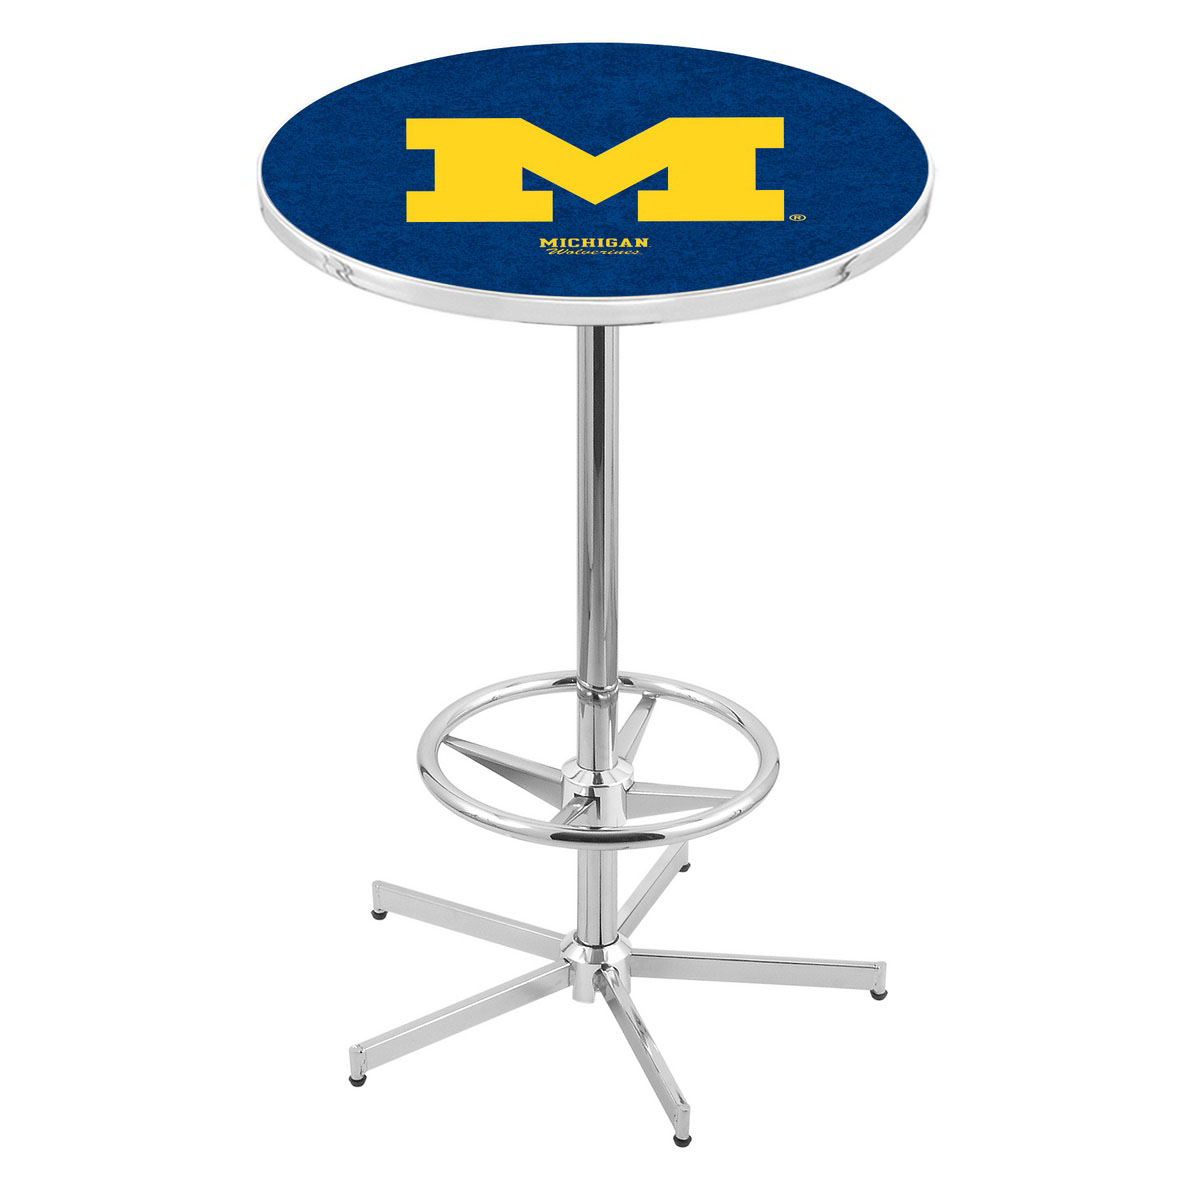 Trustworthy Chrome Michigan Pub Table Product Photo